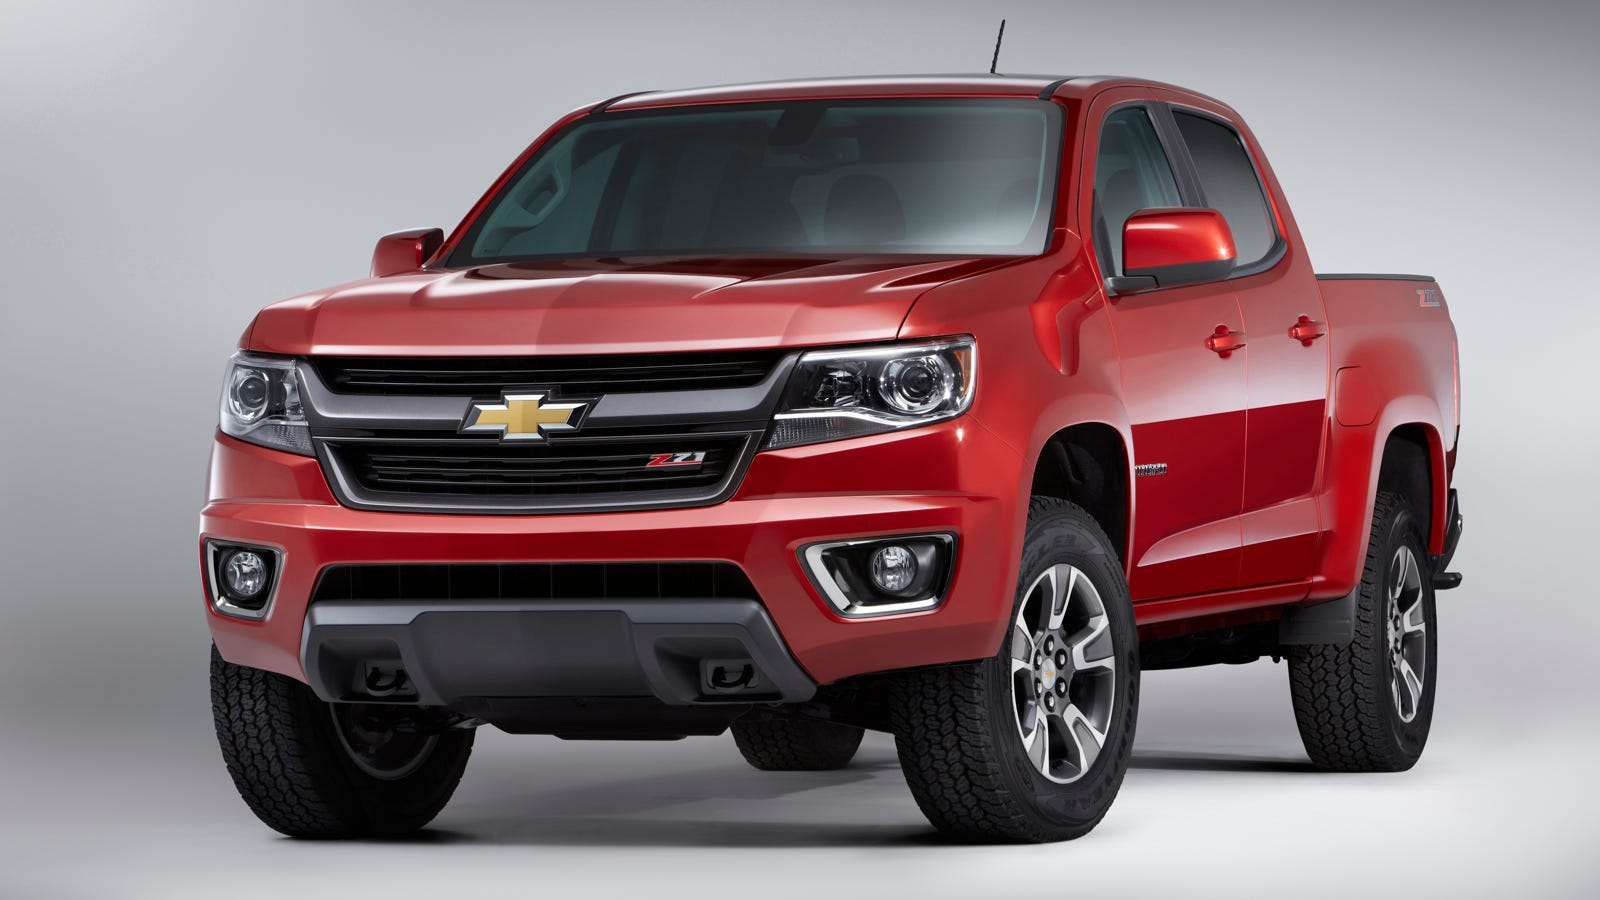 The 2015 Chevy Colorado Will Cost $20,995, GMC Canyon Starts At ...